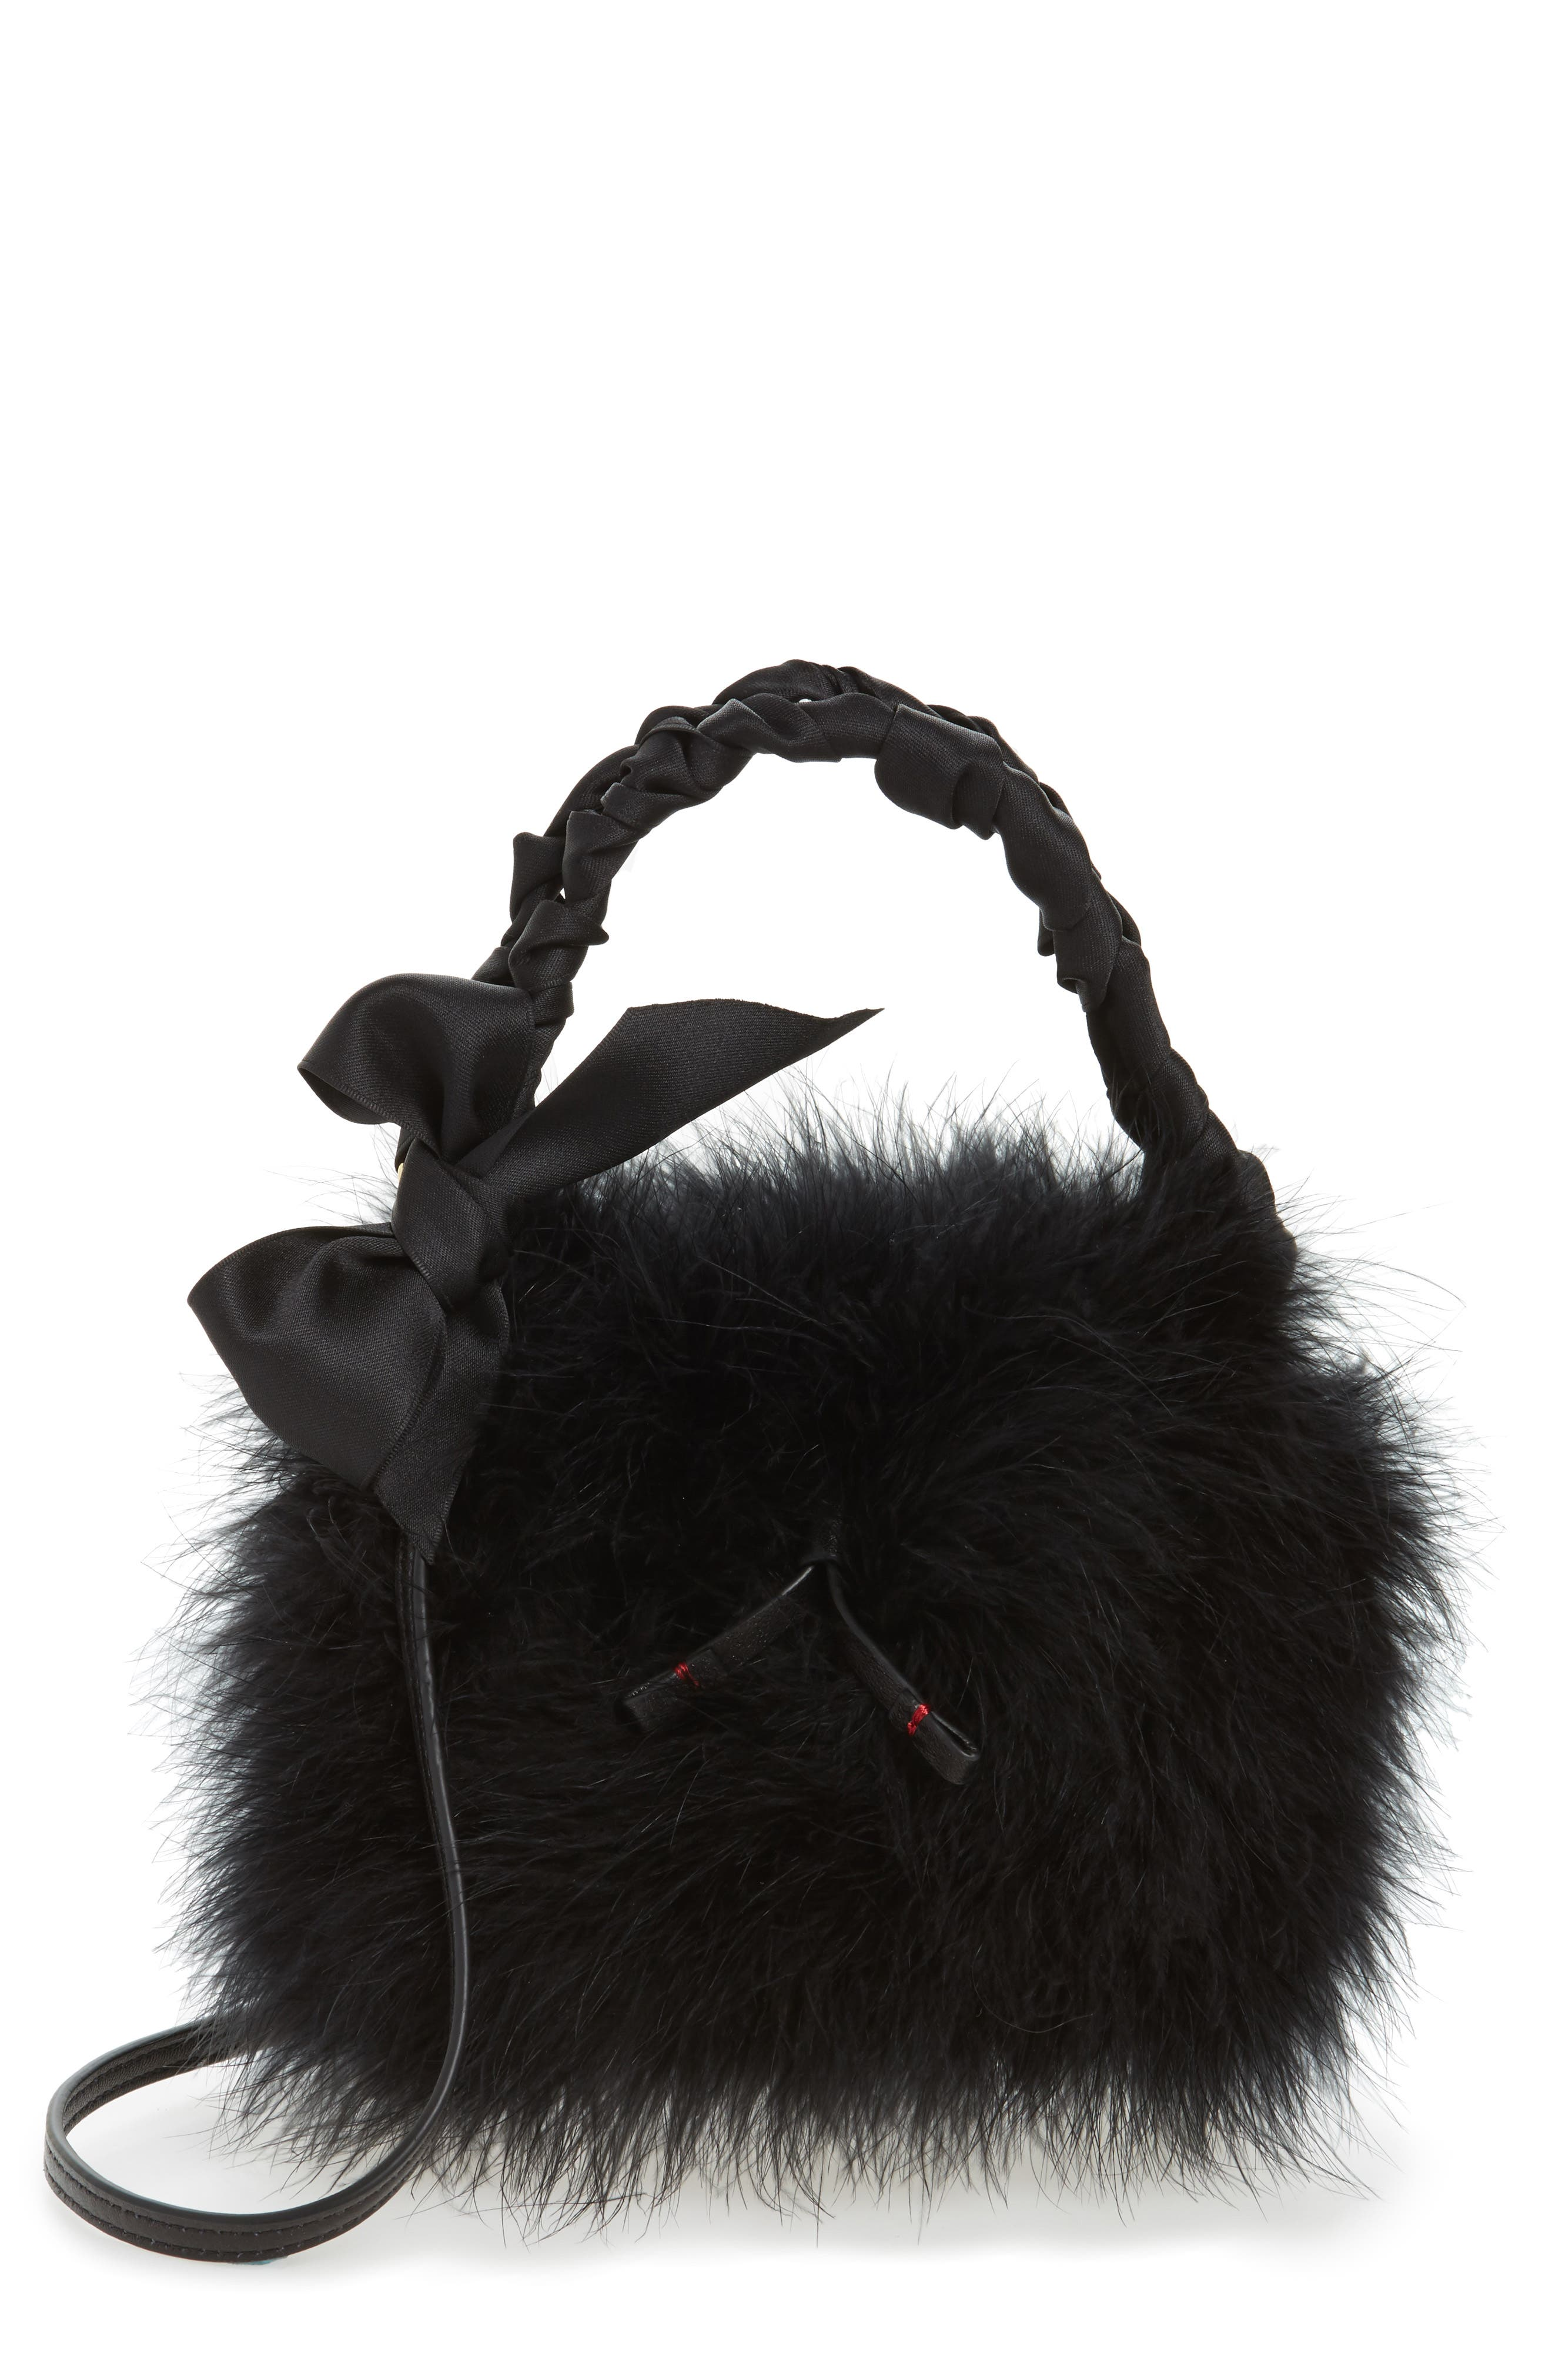 Small Calfskin Leather & Feather Bucket Bag,                             Main thumbnail 1, color,                             001